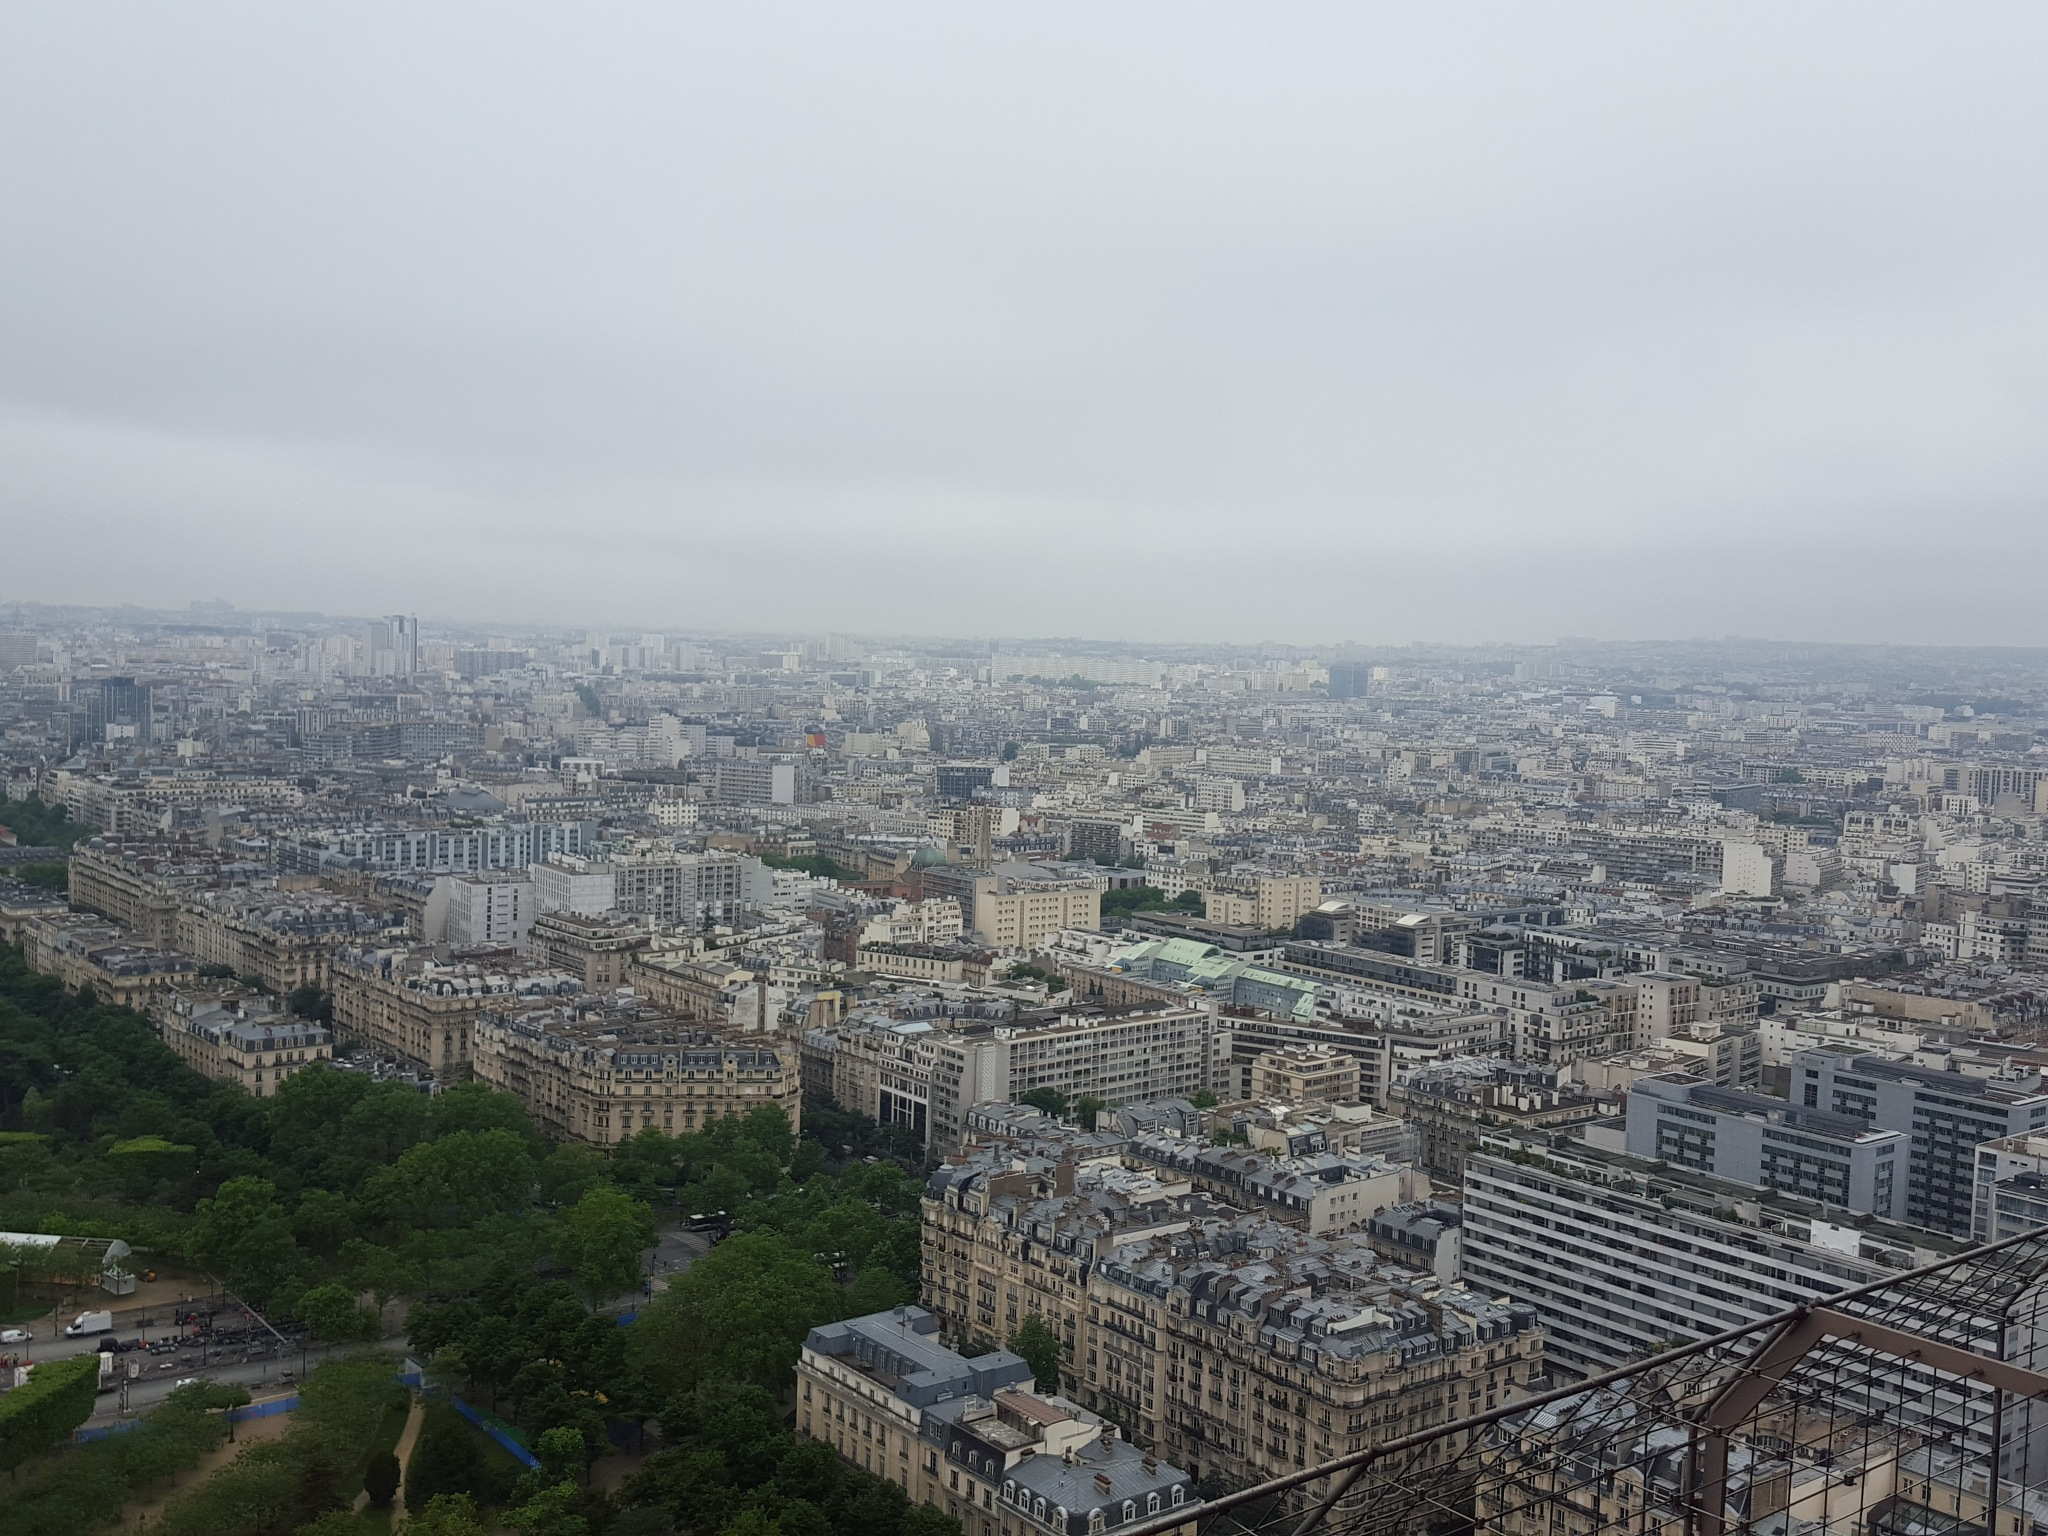 View from the Eiffel Tower (Paris, France) by Syiqah A.